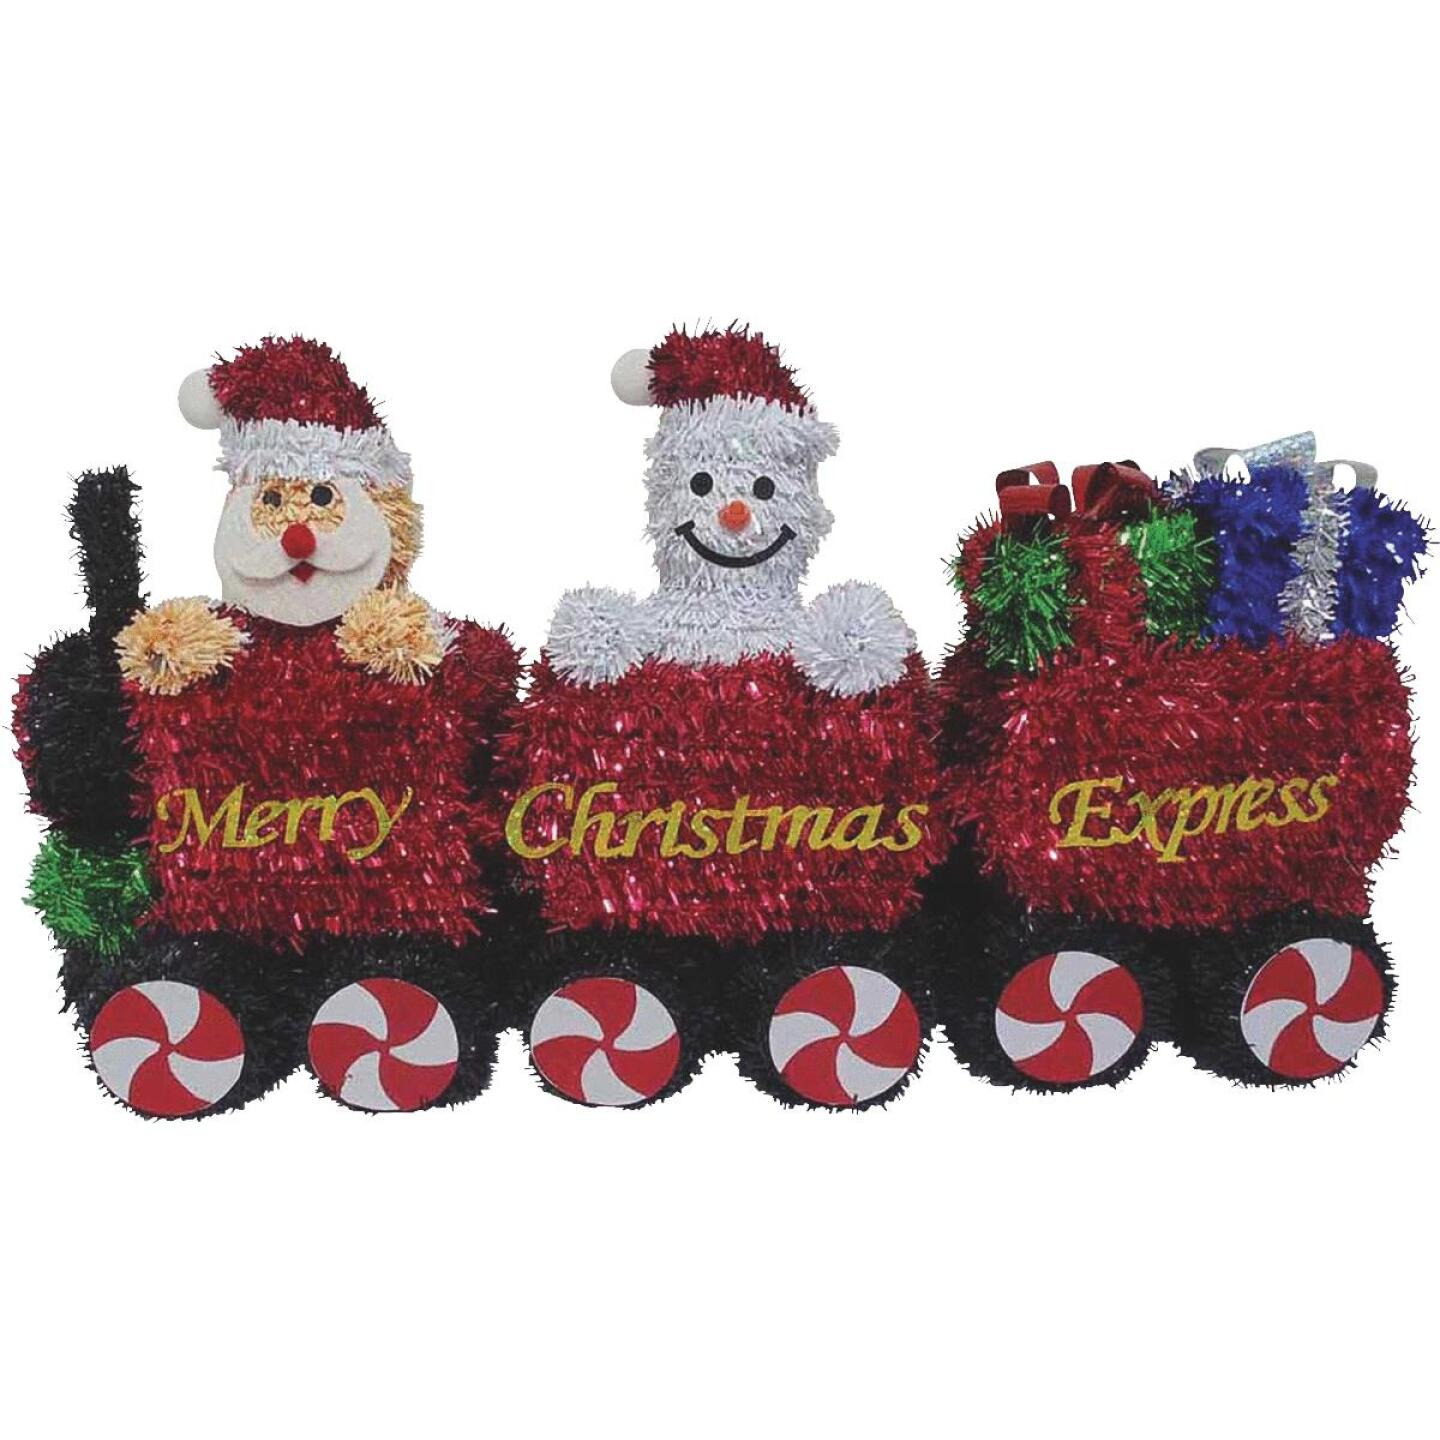 F C Young 15 In. Tinsel Christmas Train Holiday Decoration Image 1